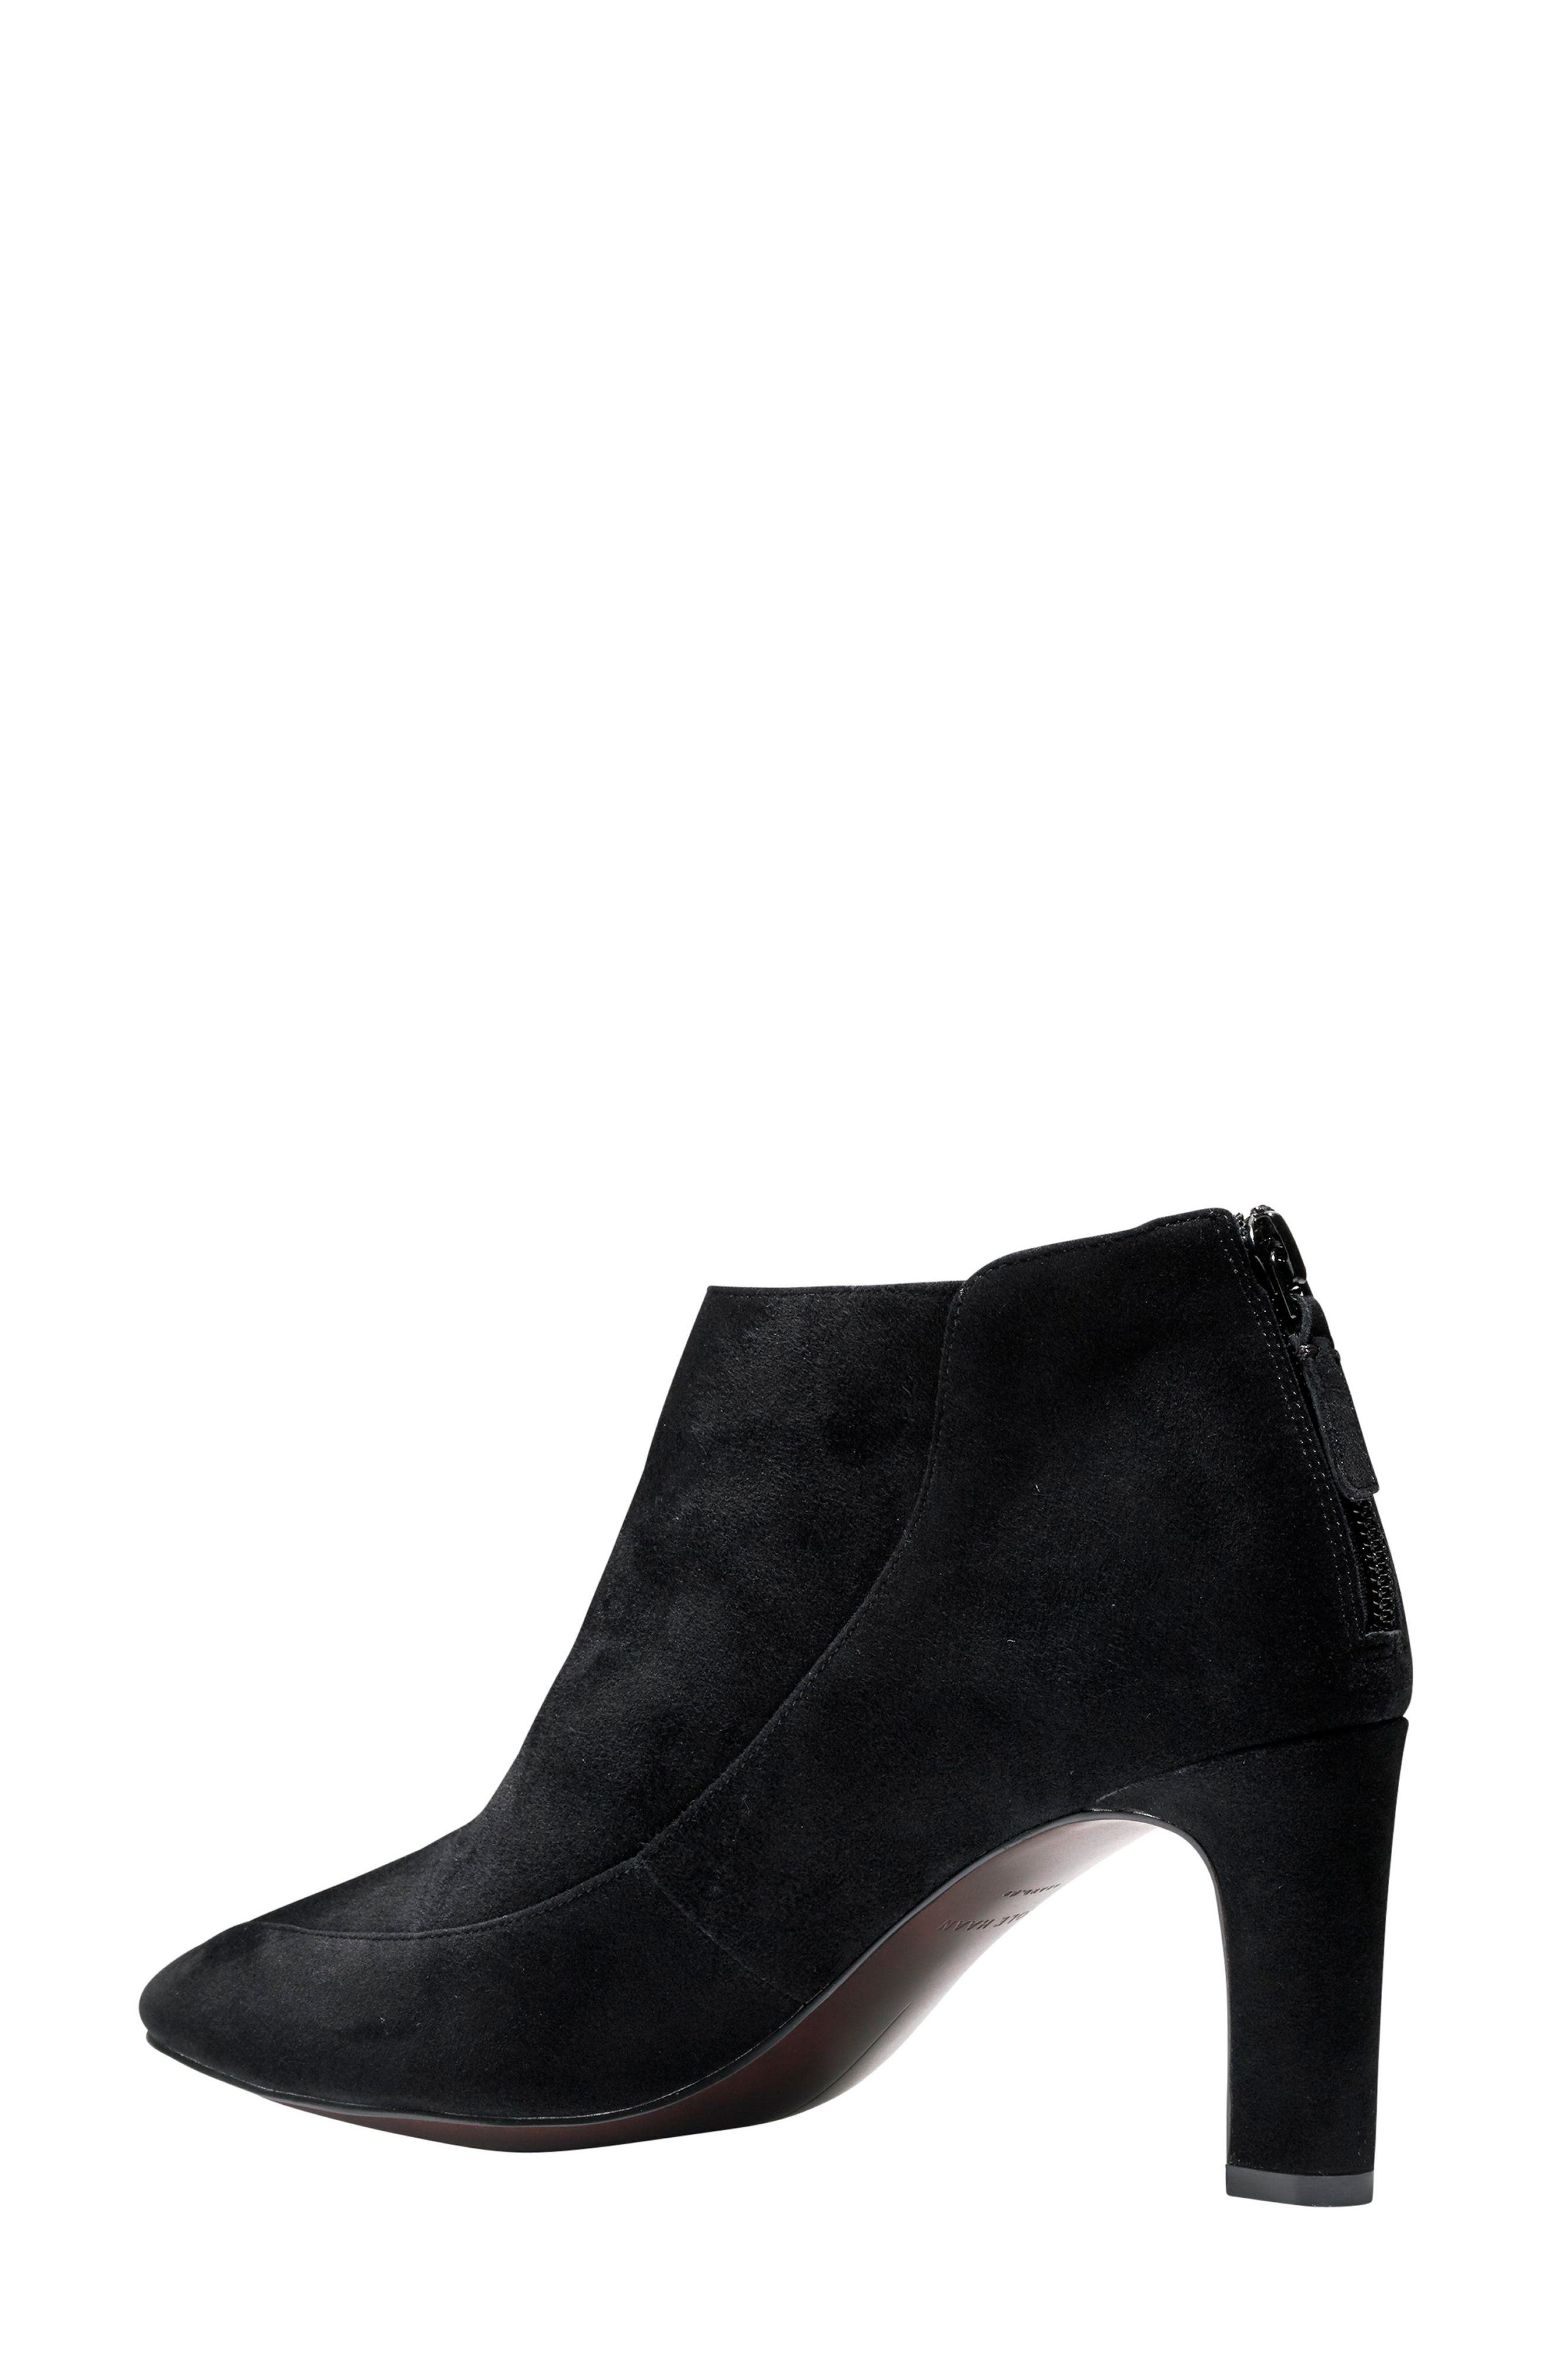 Arlean Pointy Toe Bootie,                             Alternate thumbnail 2, color,                             001